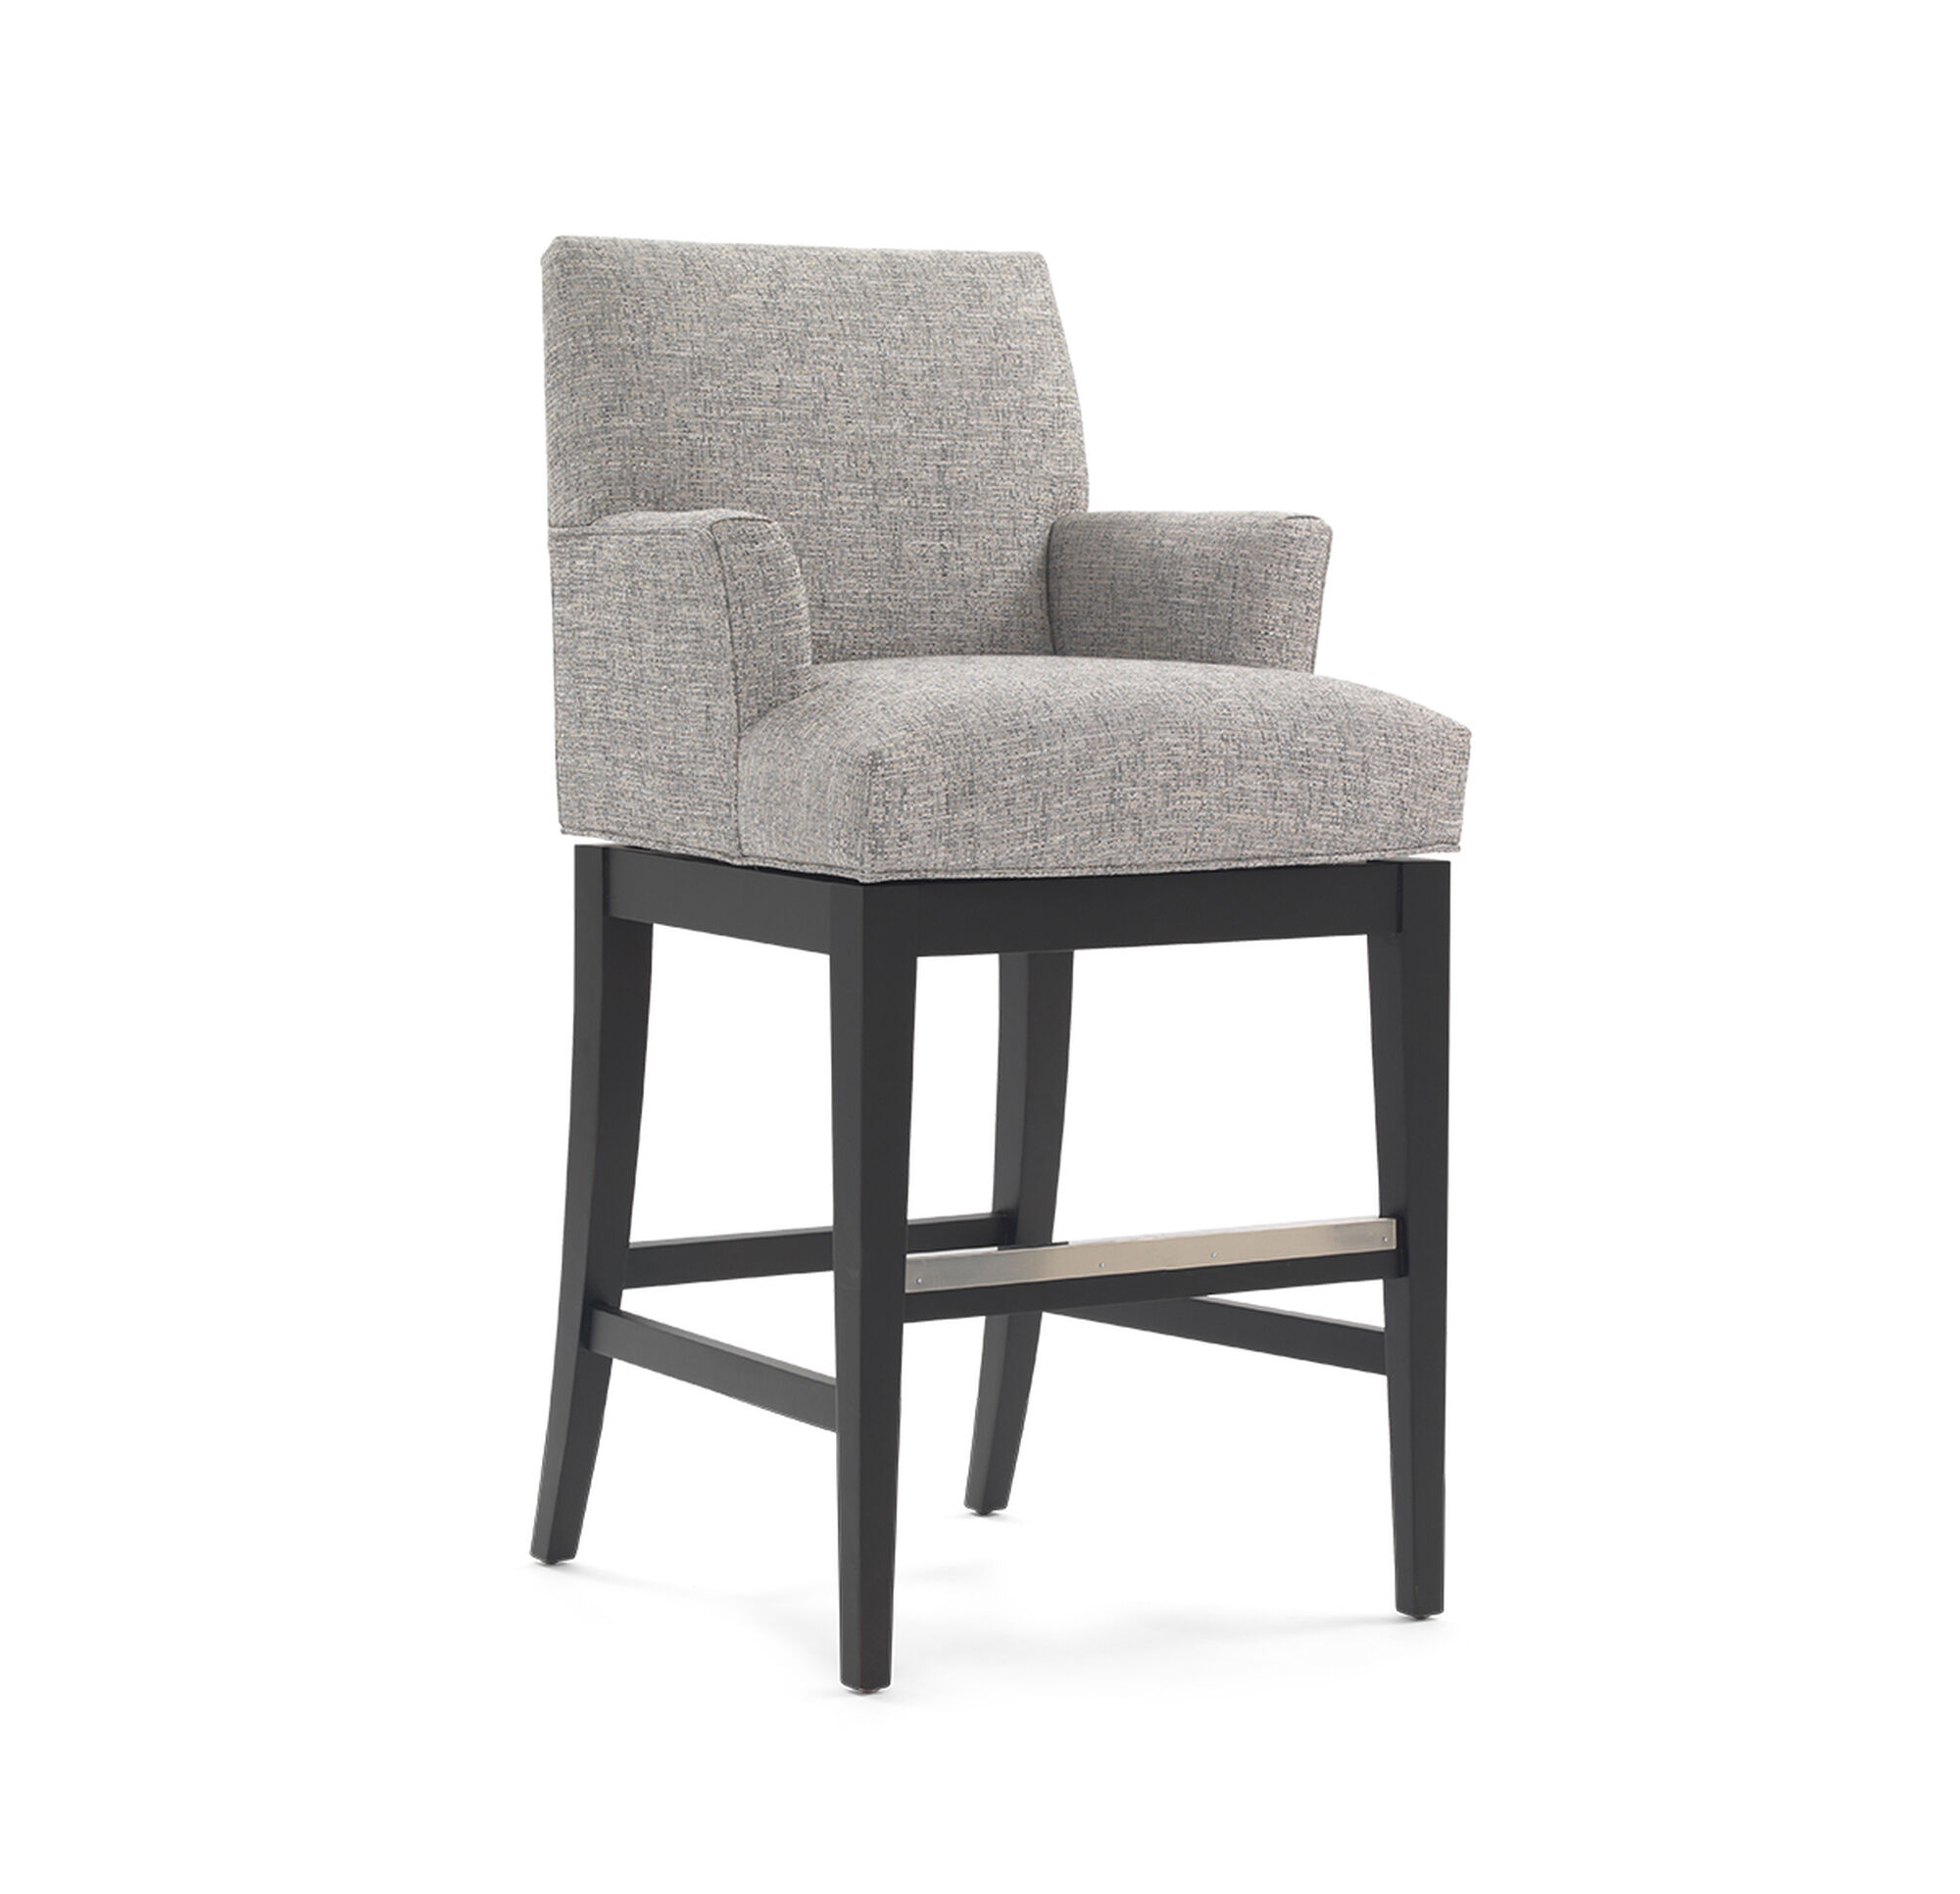 Anthony Return Swivel Bar Stool With Arms Hi Res